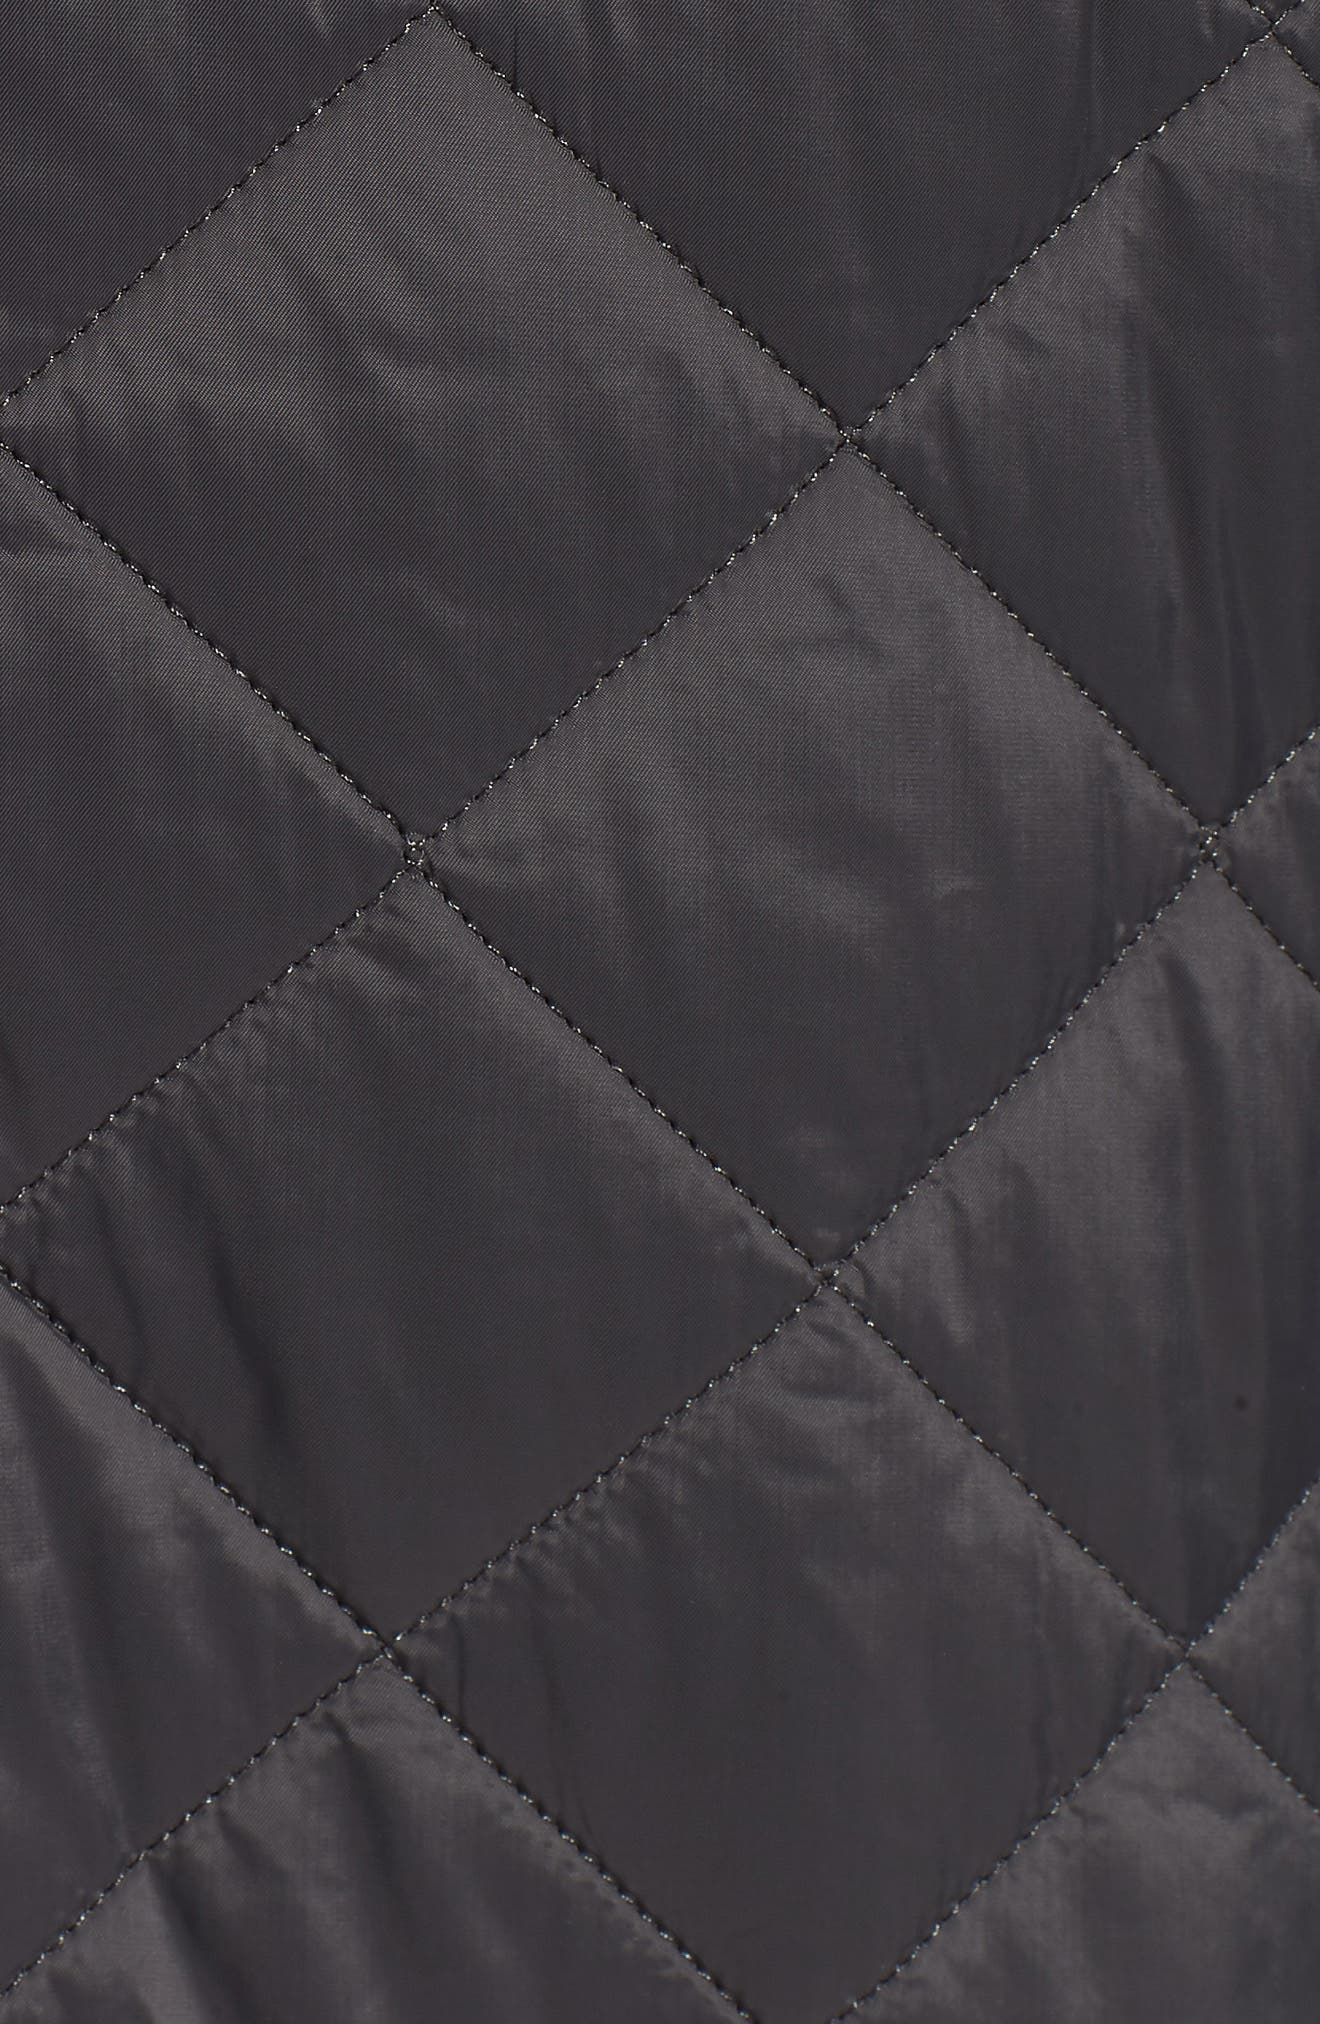 International Windshield Quilted Jacket,                             Alternate thumbnail 7, color,                             CHARCOAL